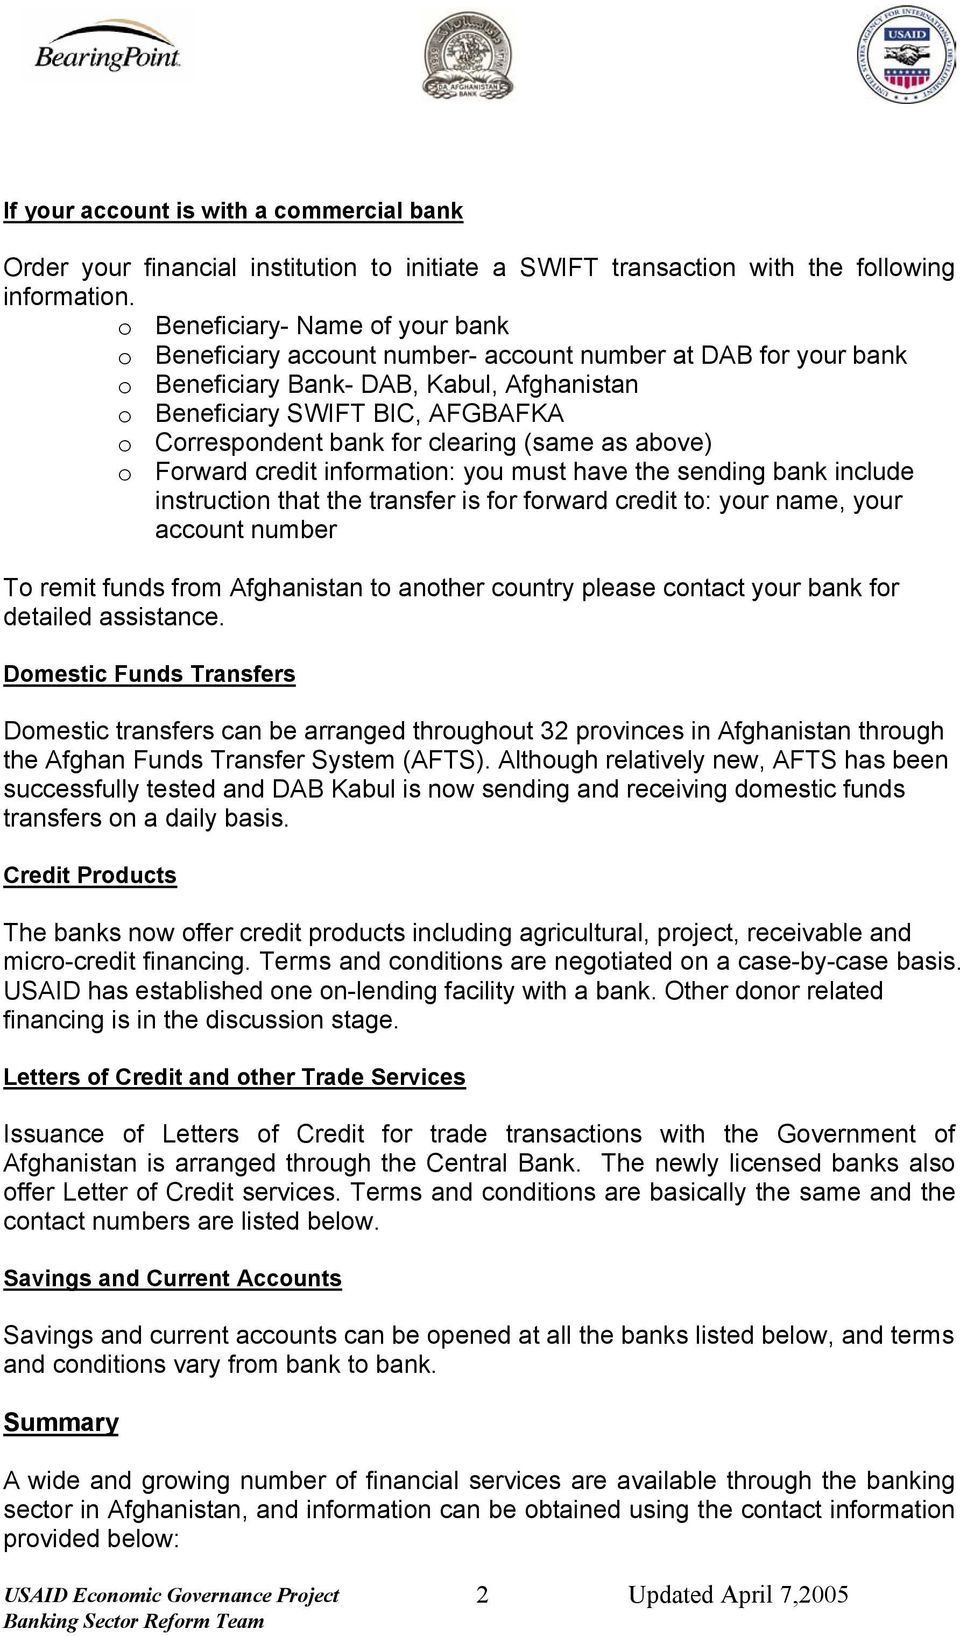 Banking System Services. Banking Services: - PDF